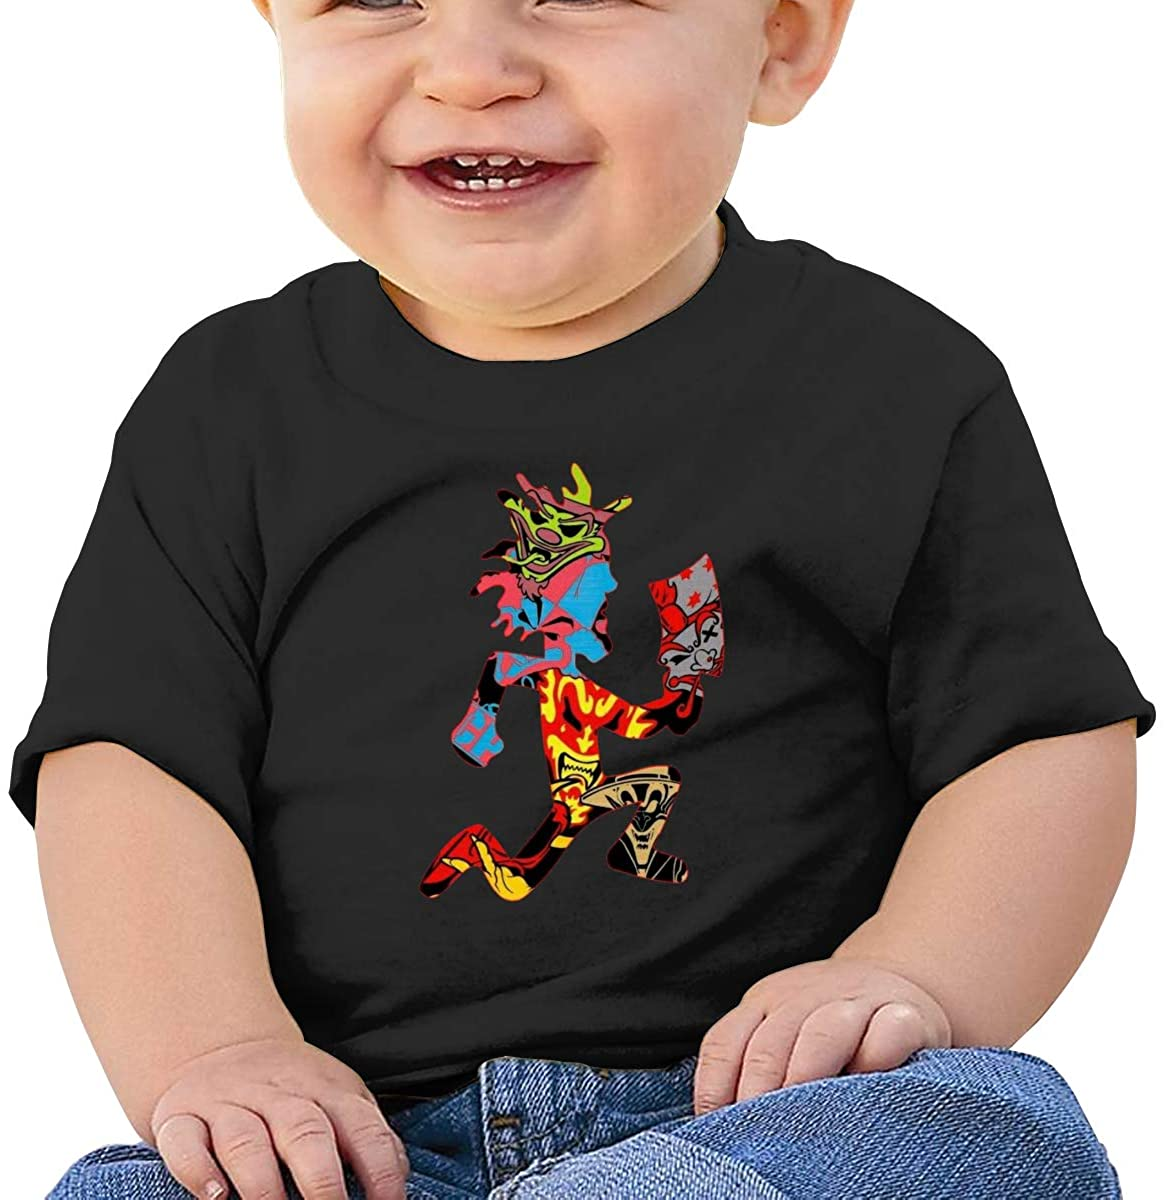 6-24 Months Boy and Girl Baby Short Sleeve T-Shirt Hatchetman ICP Original Minimalist Style Black